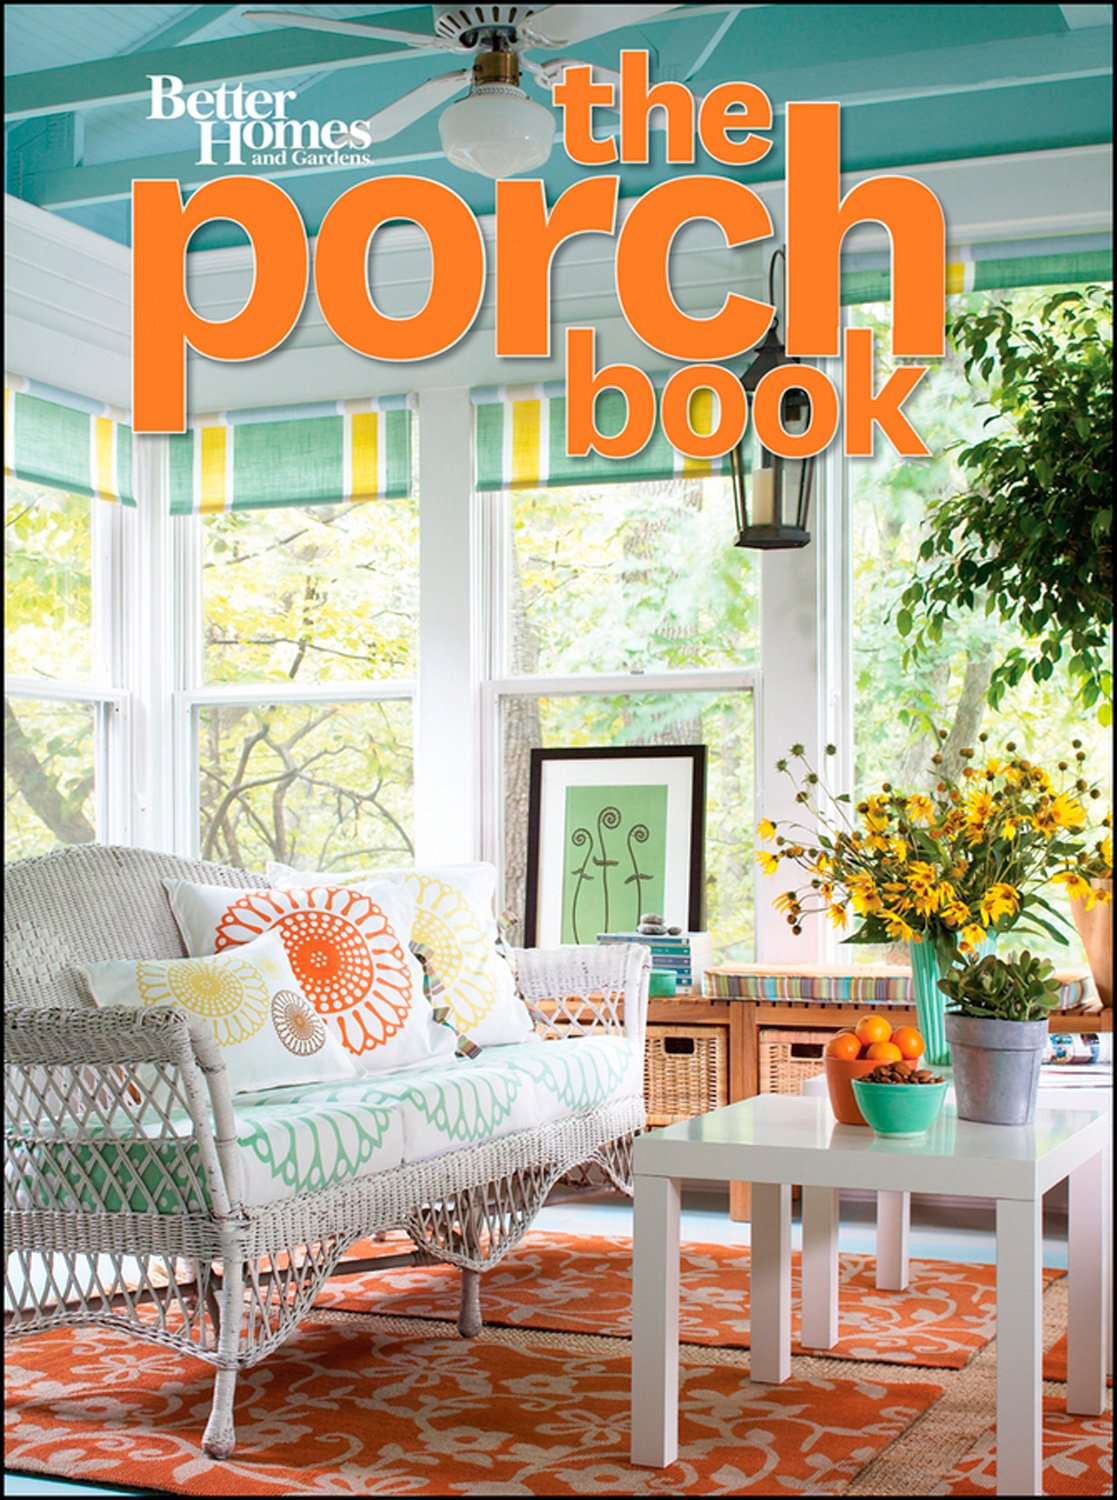 The Porch Book (Better Homes and Gardens) (Better Homes and Gardens Home)